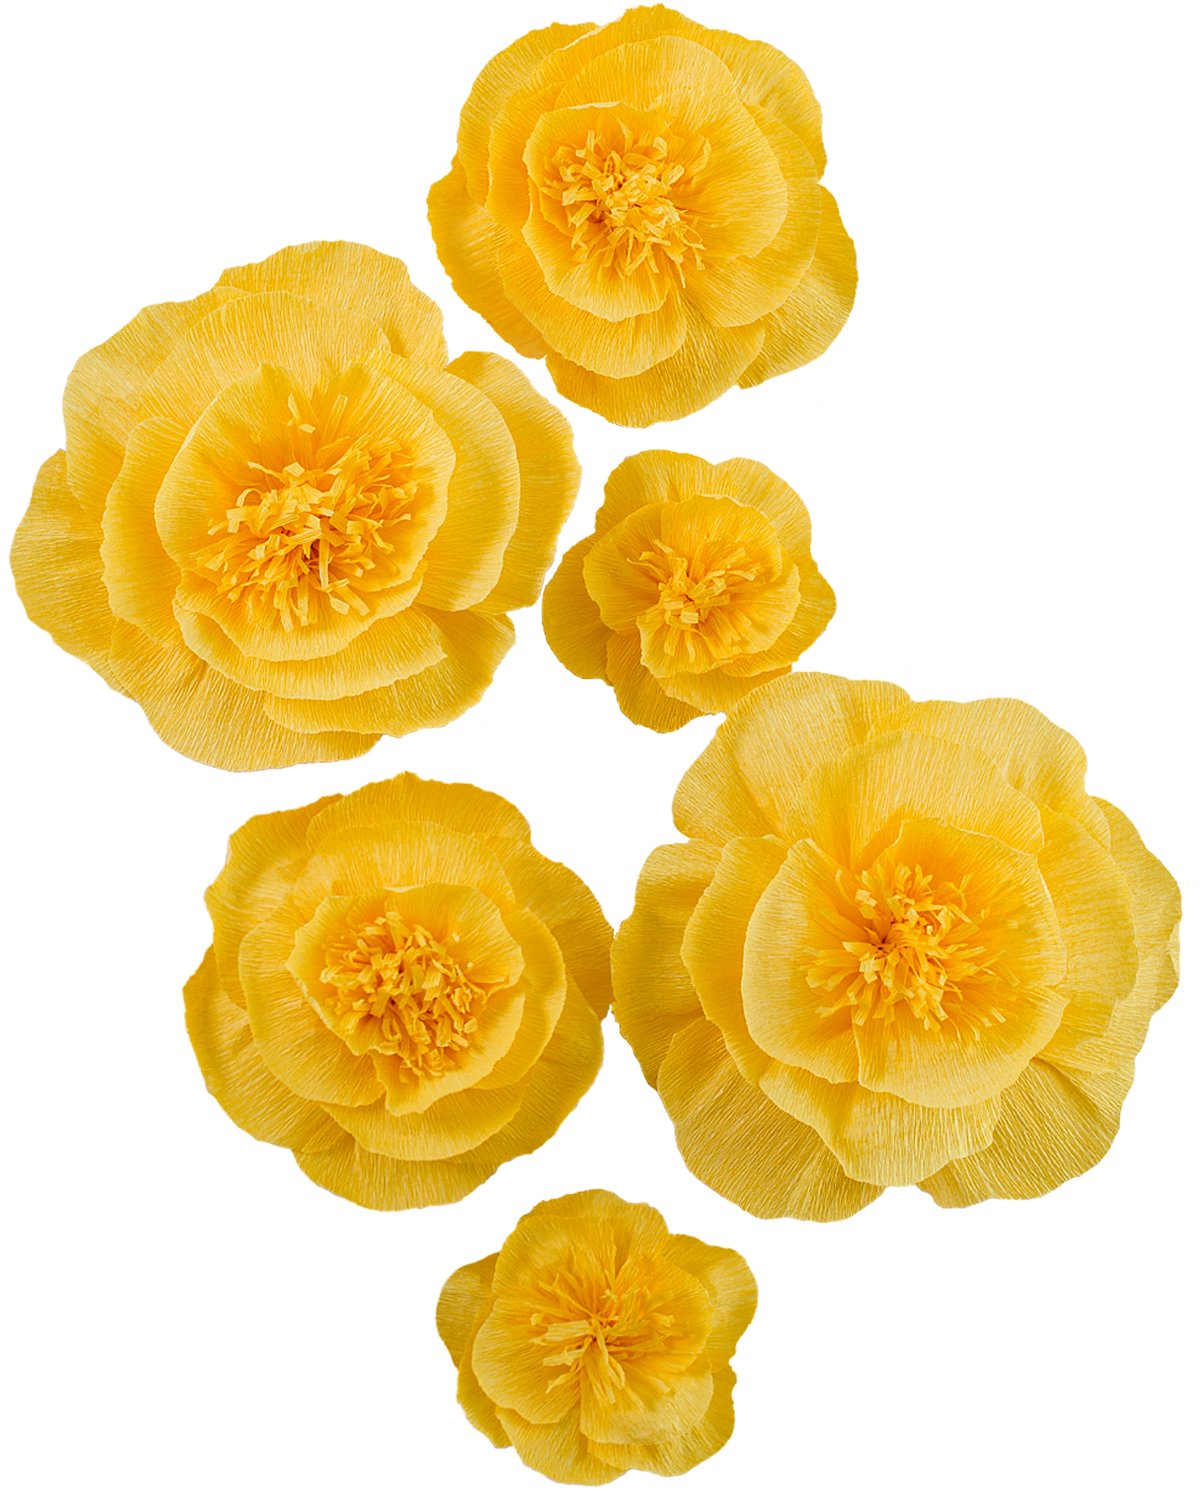 Large Paper Flower Decorations Golden Yellow Crepe Paper Flower ...